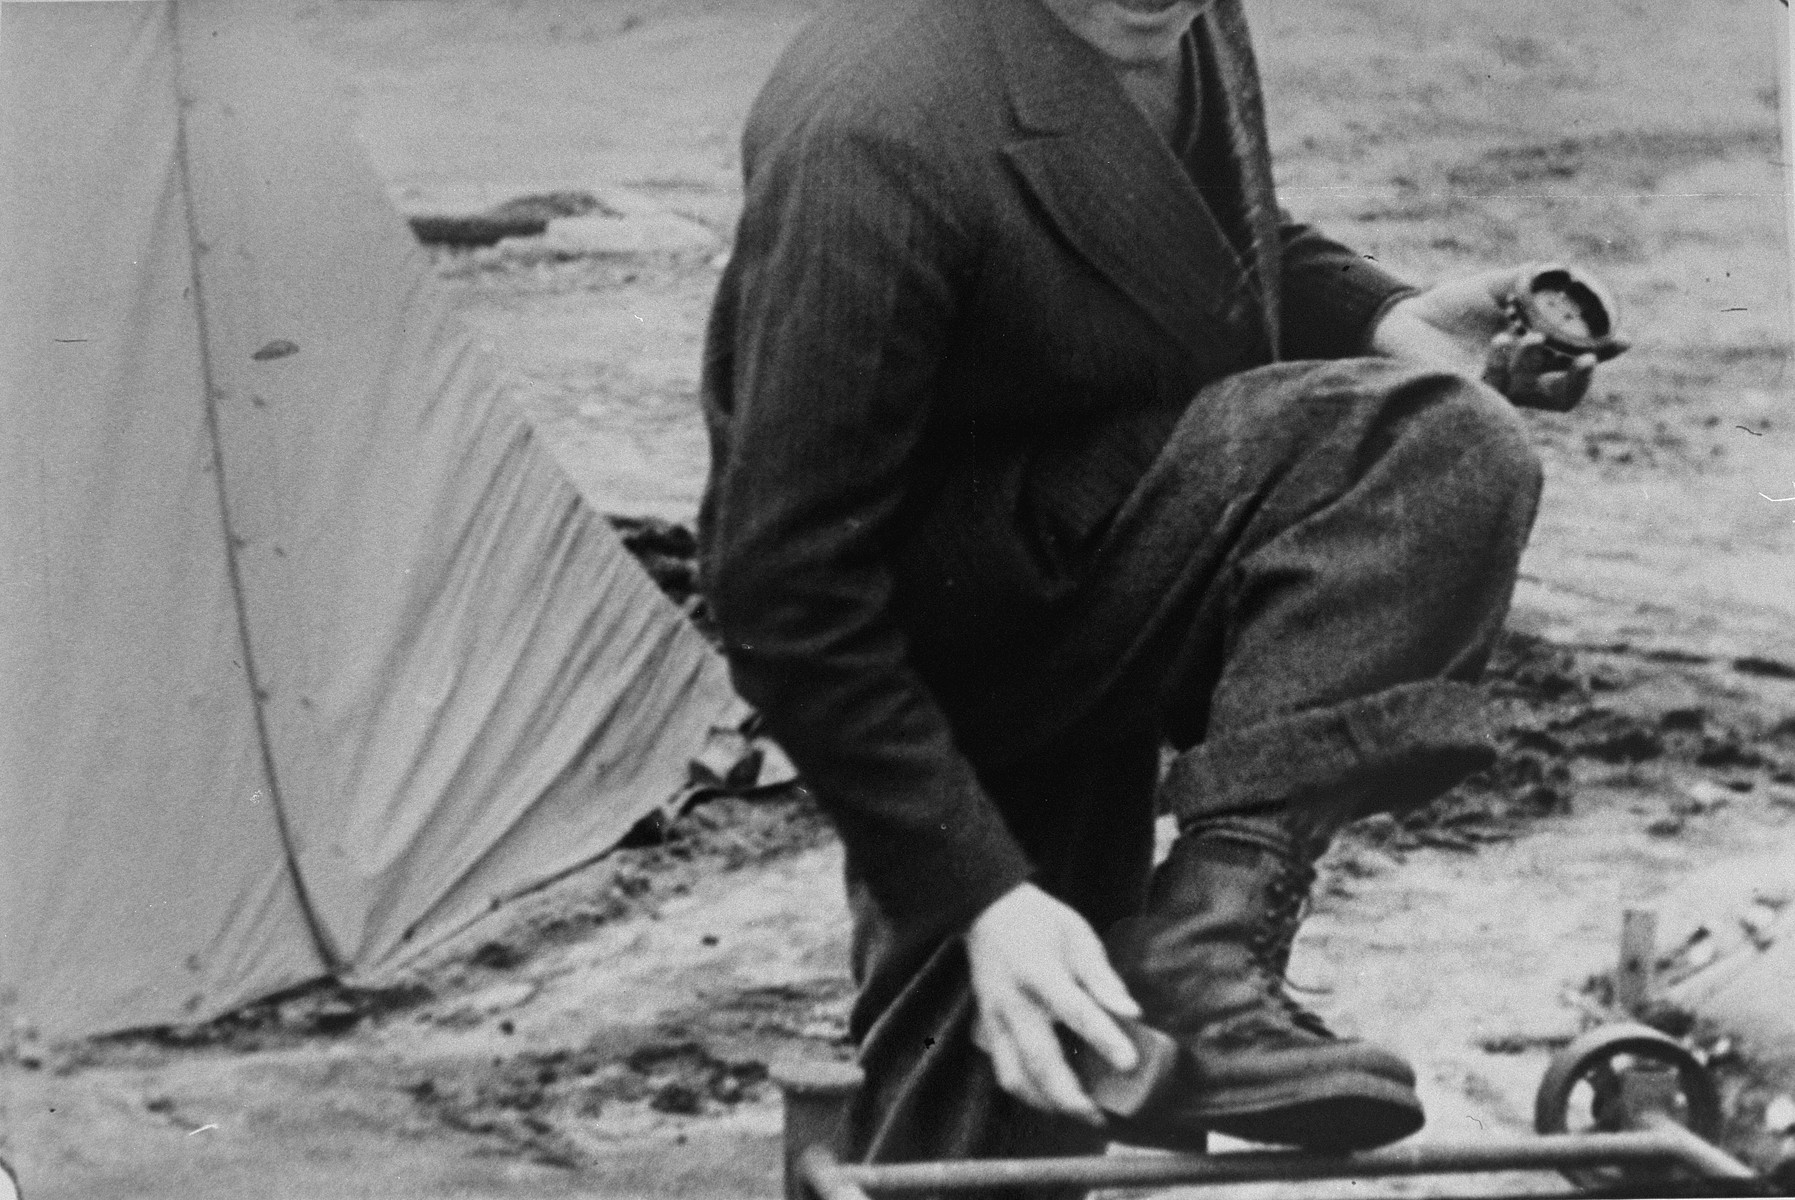 A Bergen-Belsen survivor shines his shoes outside a tent.